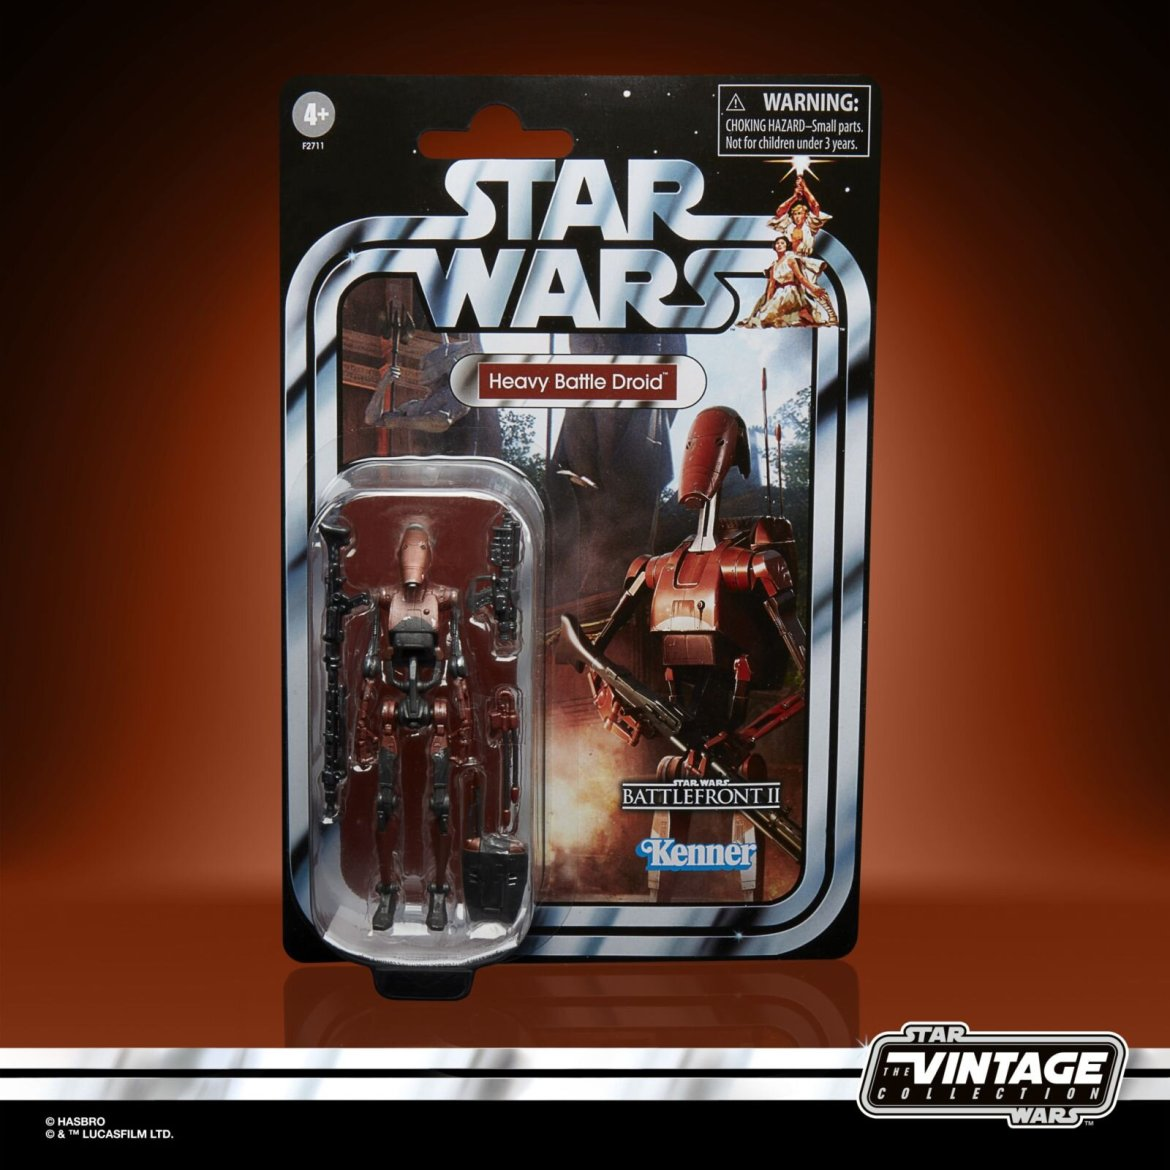 STAR WARS THE VINTAGE COLLECTION GAMING GREATS 3.75-INCH HEAVY BATTLE DROID Figure (1).jpg